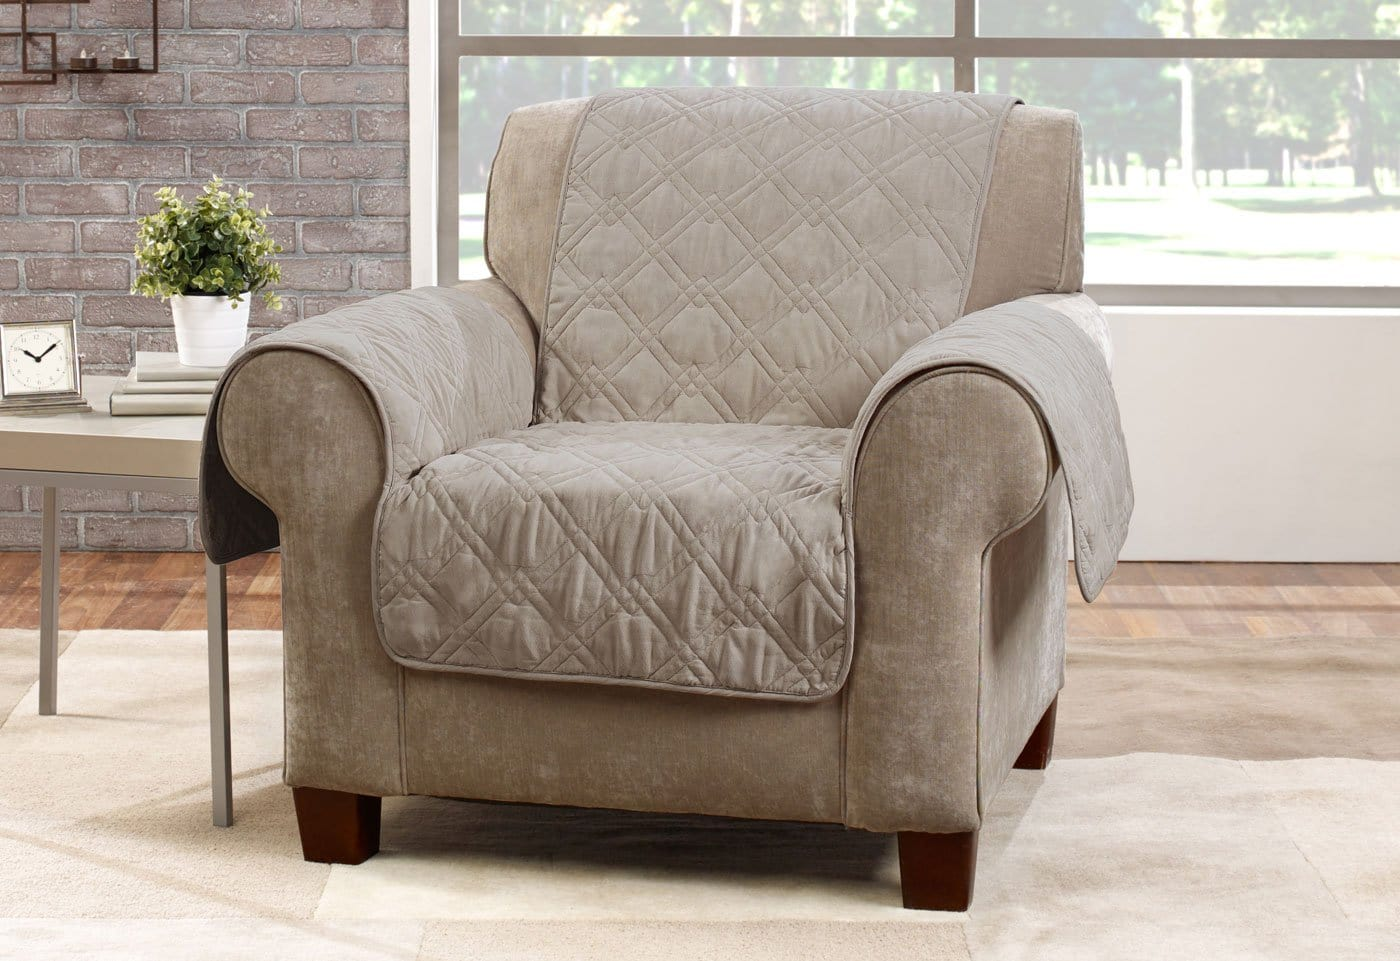 Microfiber Pet Chair Quilted Furniture Cover Pet Furniture Cover Machine Washable - Sable / Chair